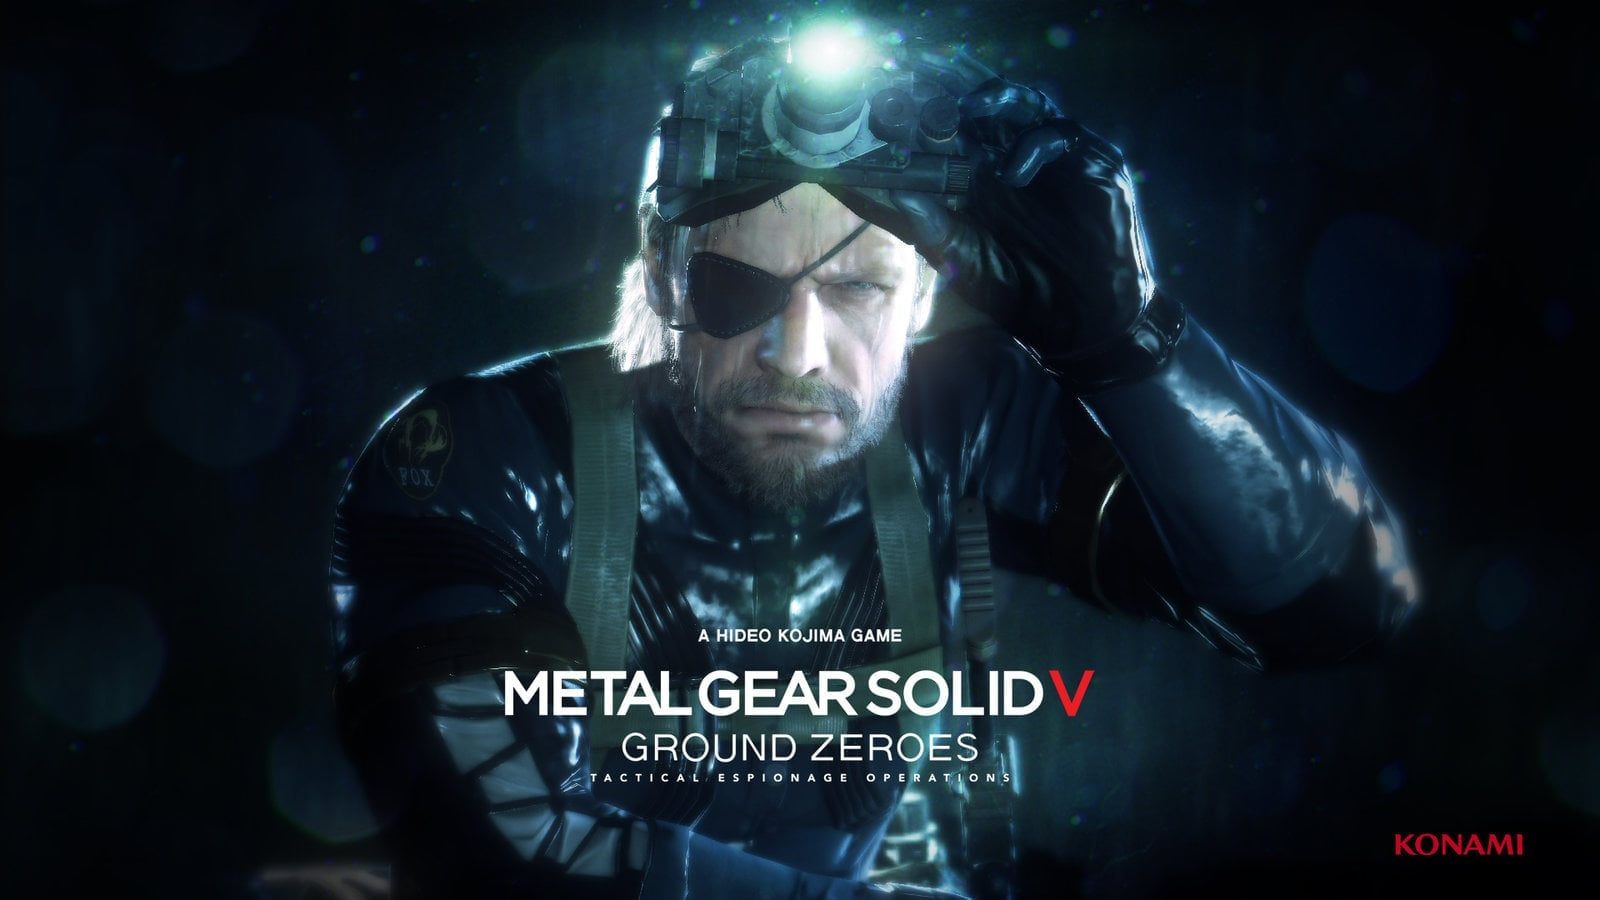 Metal Gear Solid 5 The Phantom Pain images